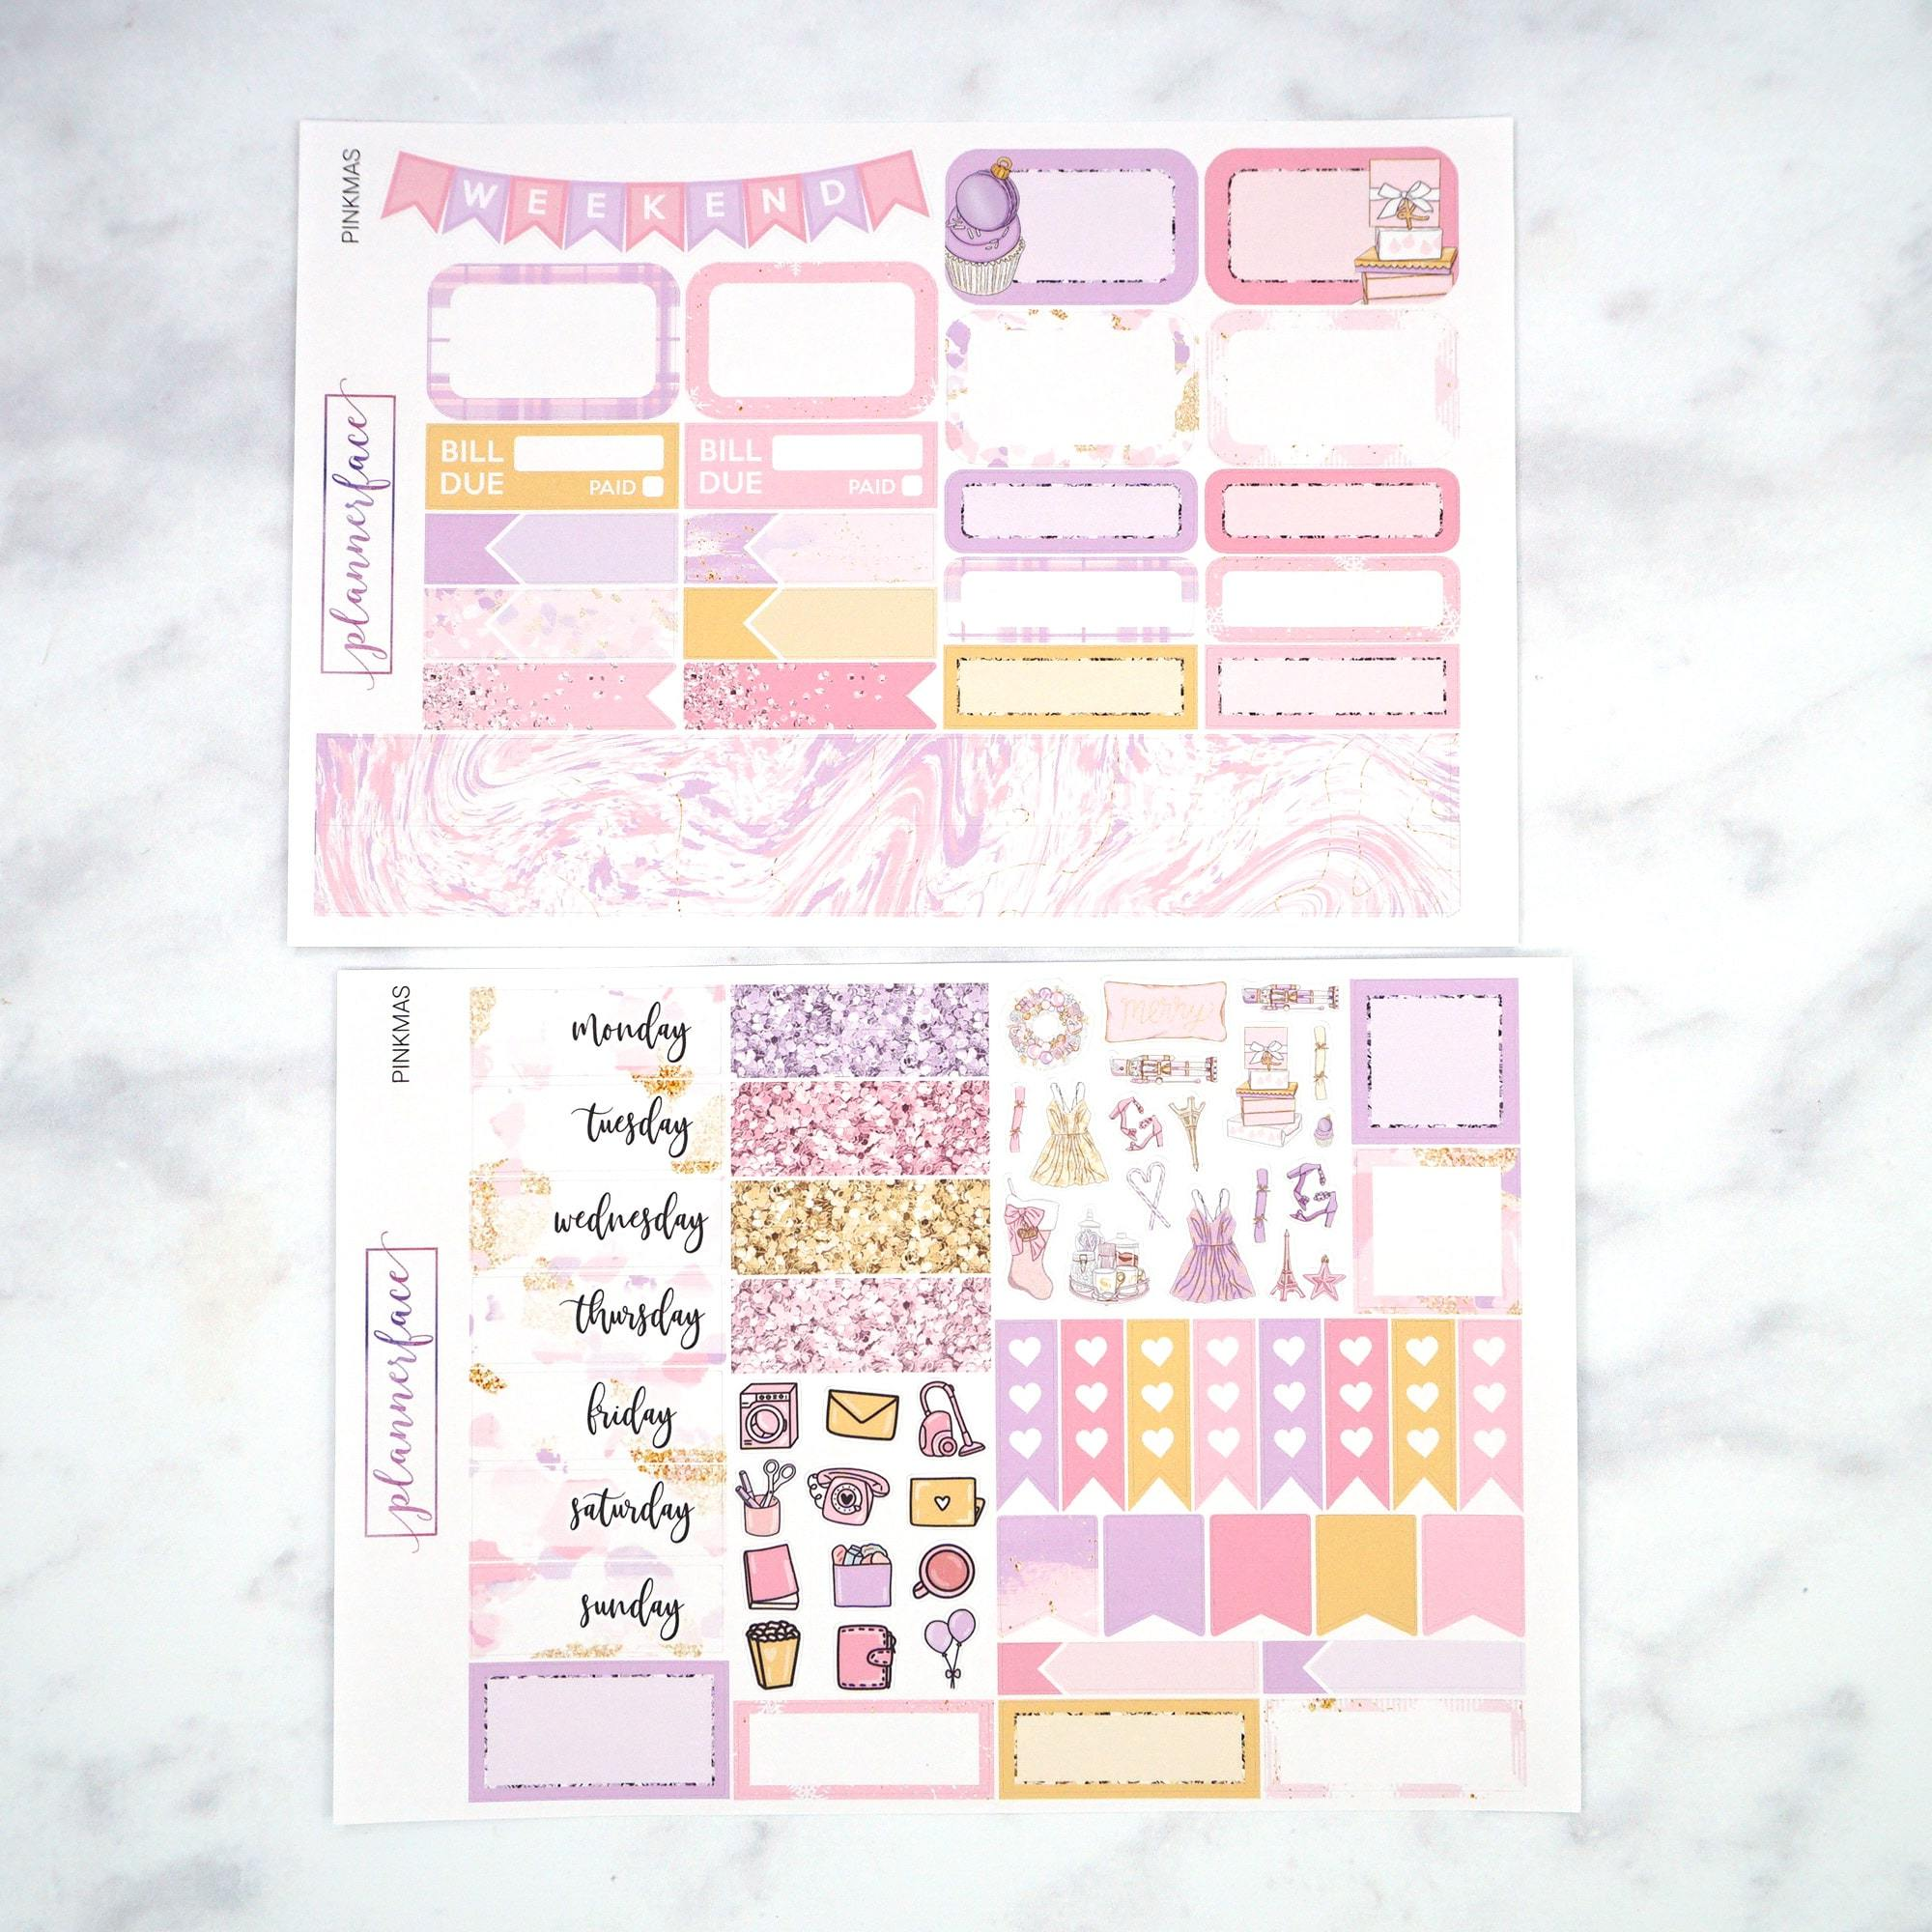 Plannerface Pinkmas Mini Kit Planner Stickers